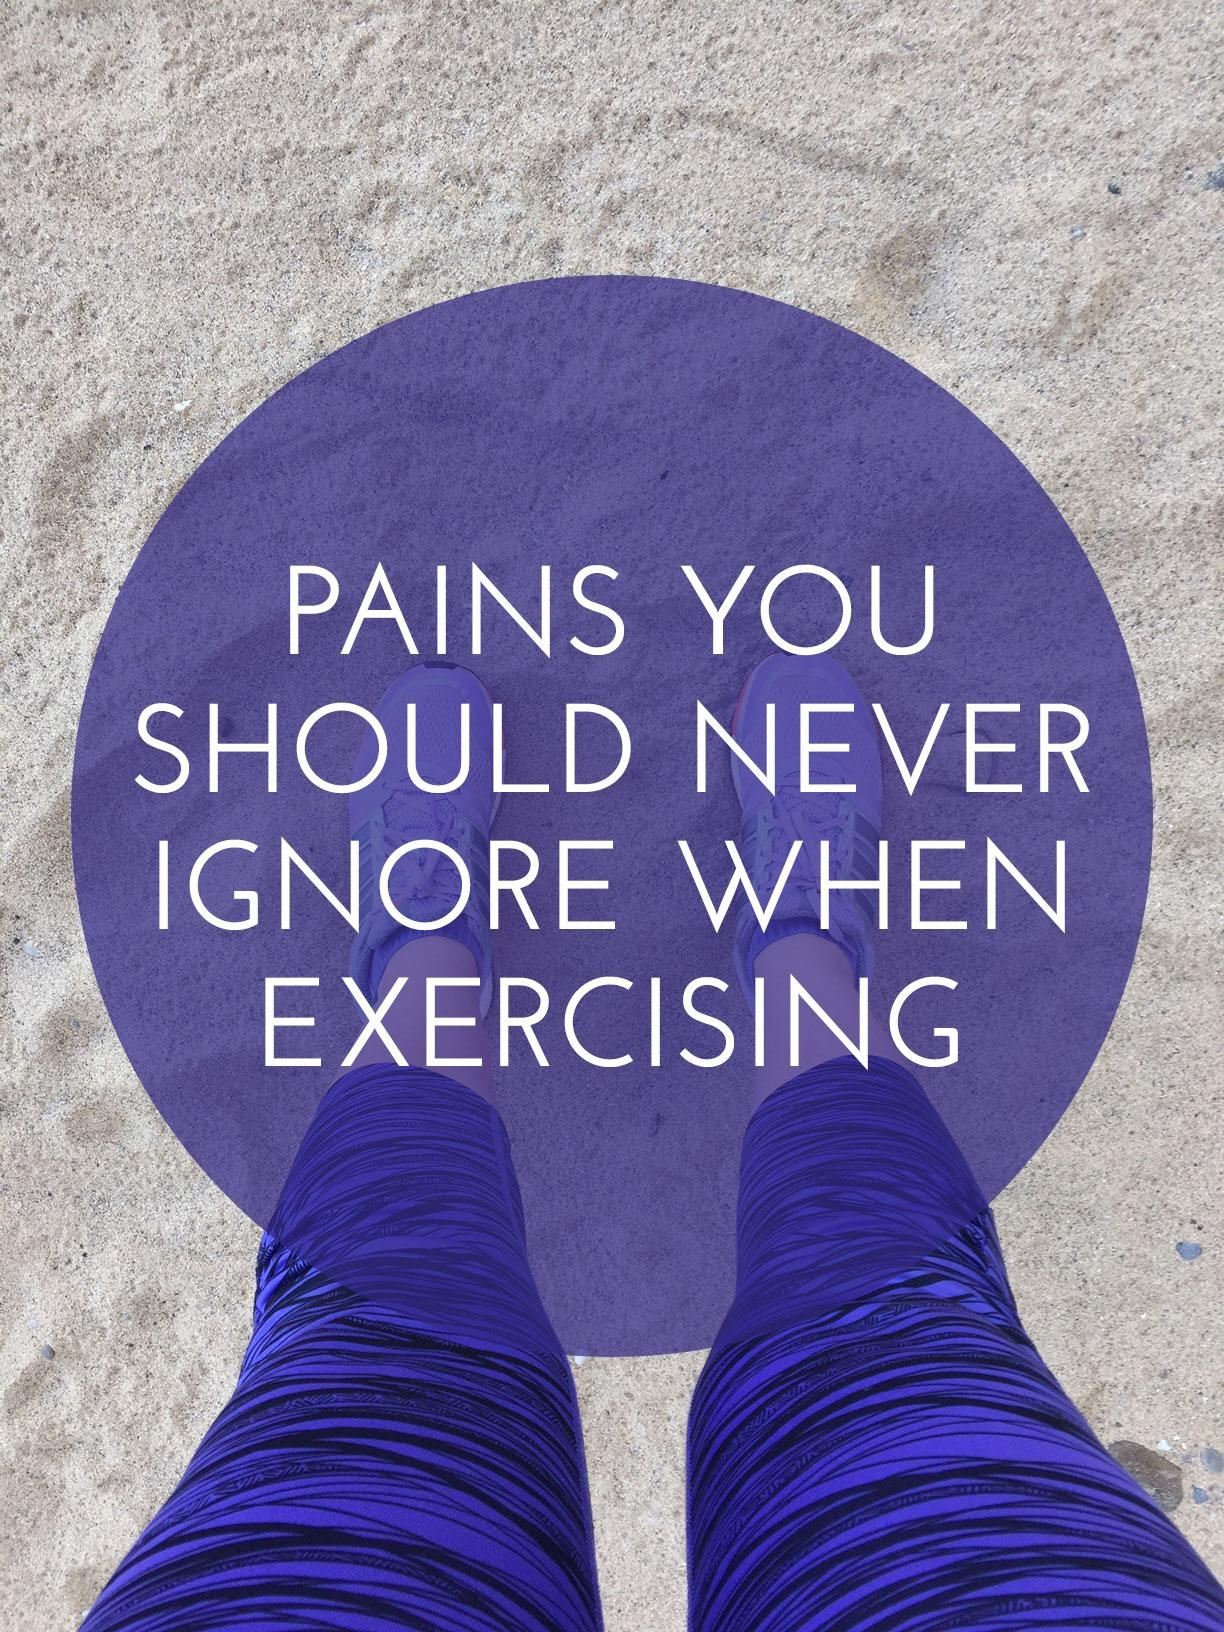 Pain when exercising